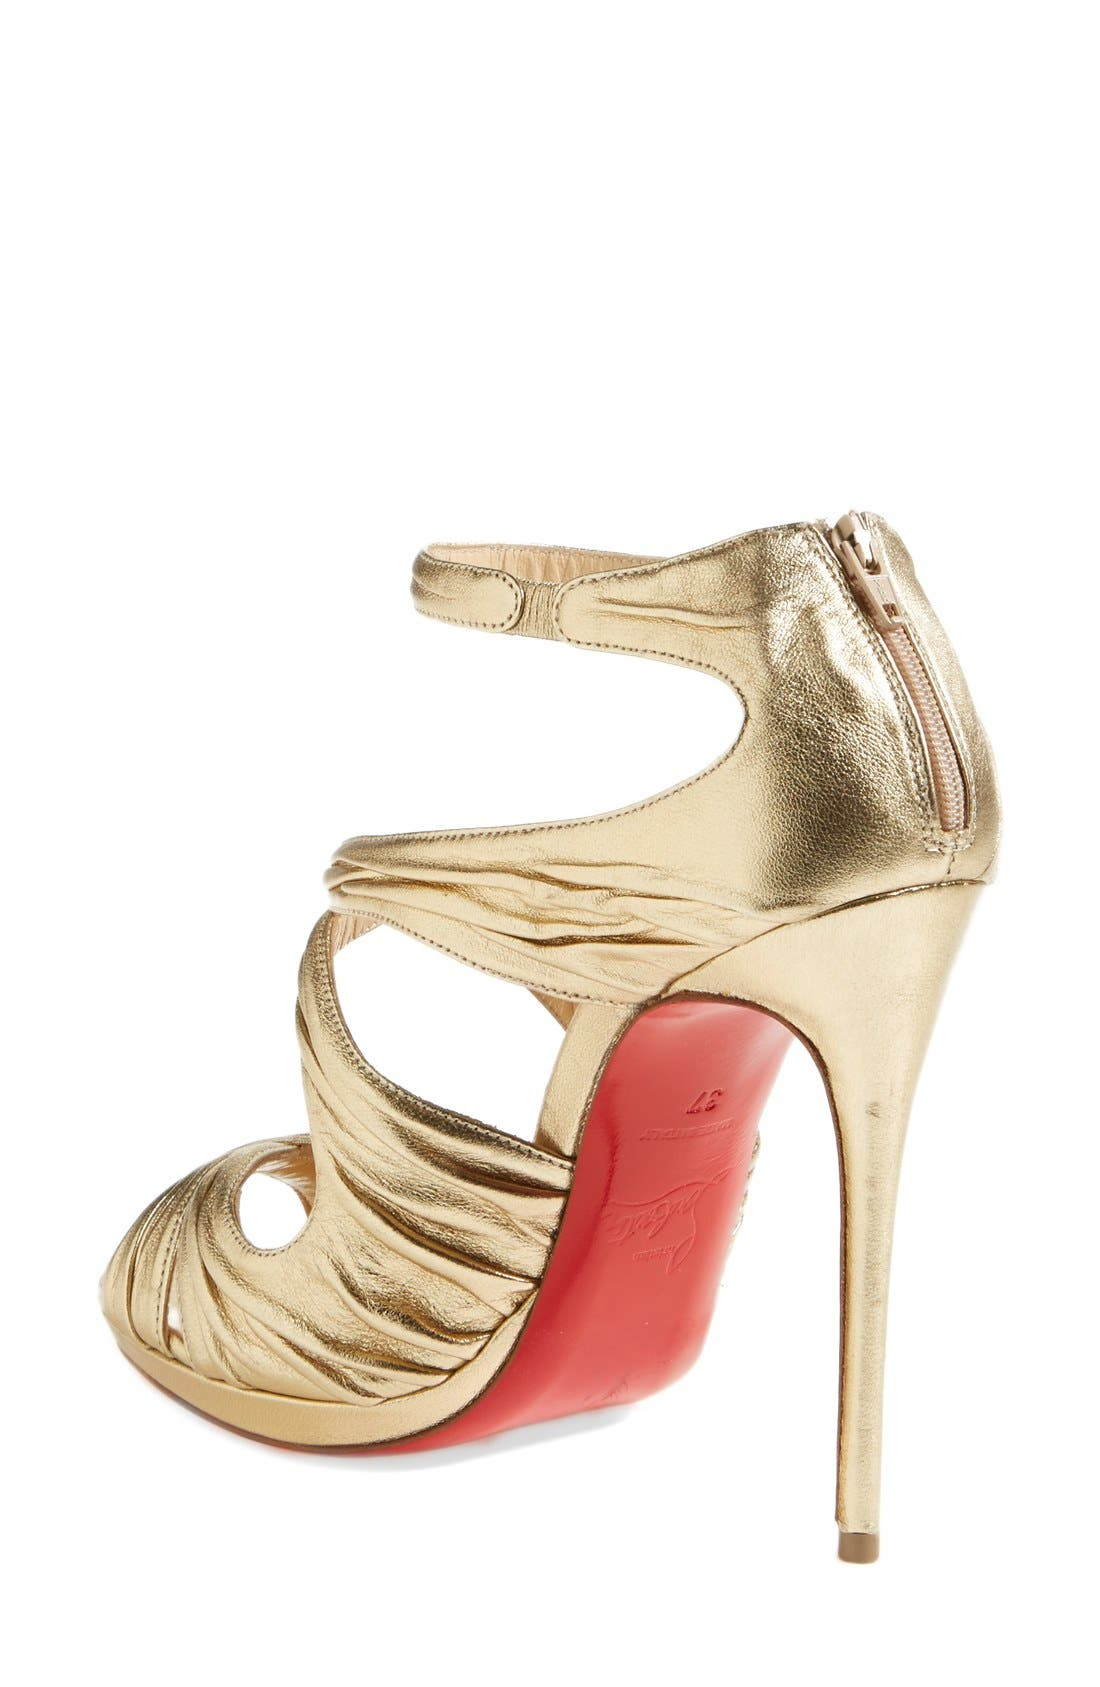 Alternate Image 2  - Christian Louboutin 'Kashou' Metallic Nappa Leather Sandal